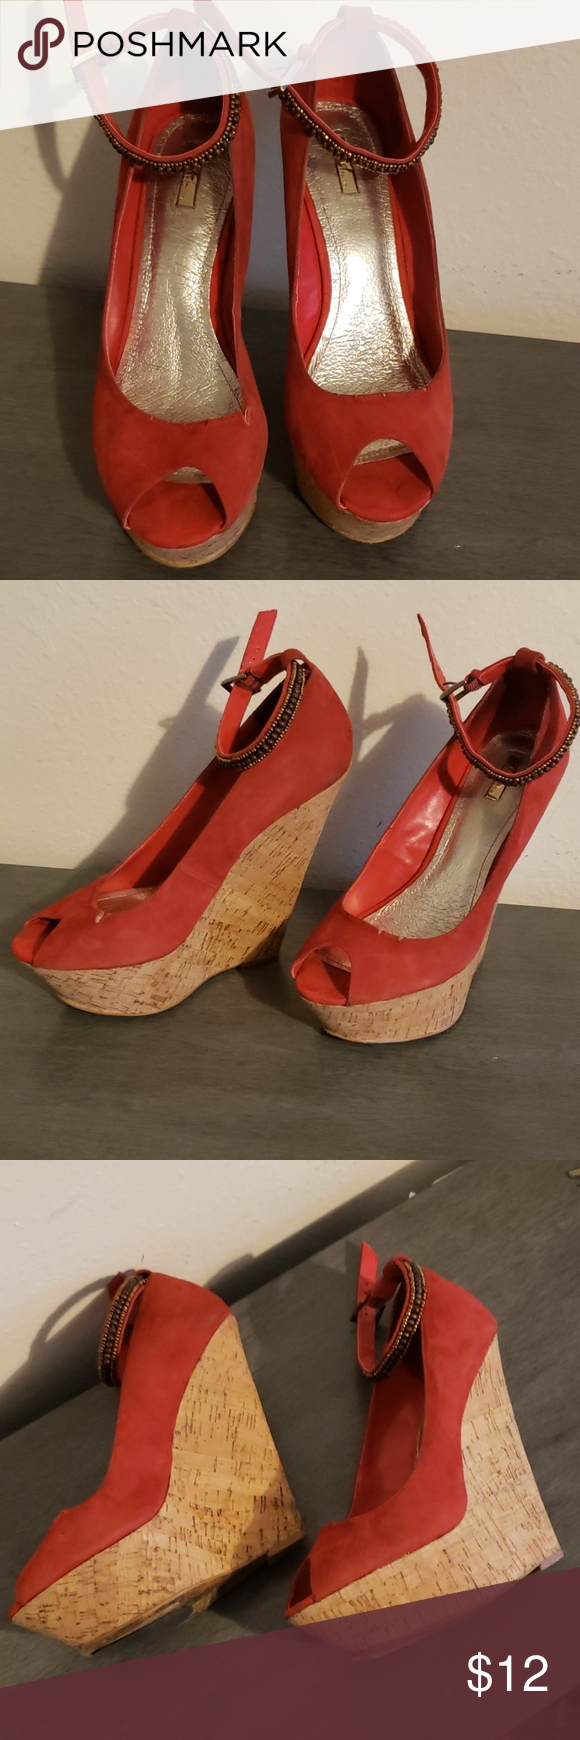 4dc69cb610 Shoes Red suede wedge open toe with ankle strap heels Wild Pair Shoes Wedges